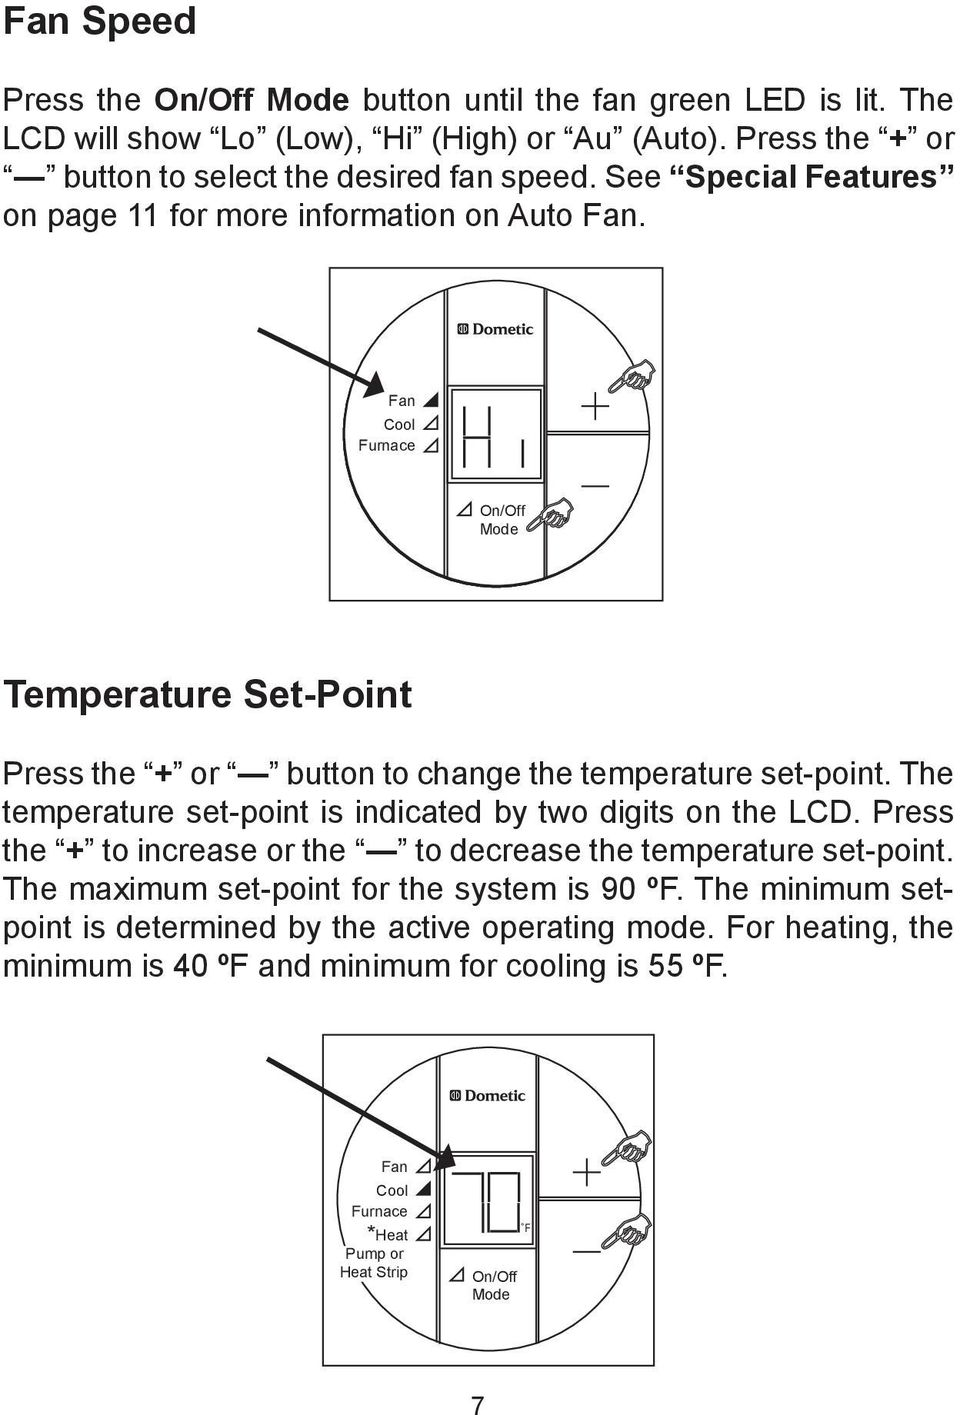 Single Zone LCD Thermostat Operating Instructions - PDF